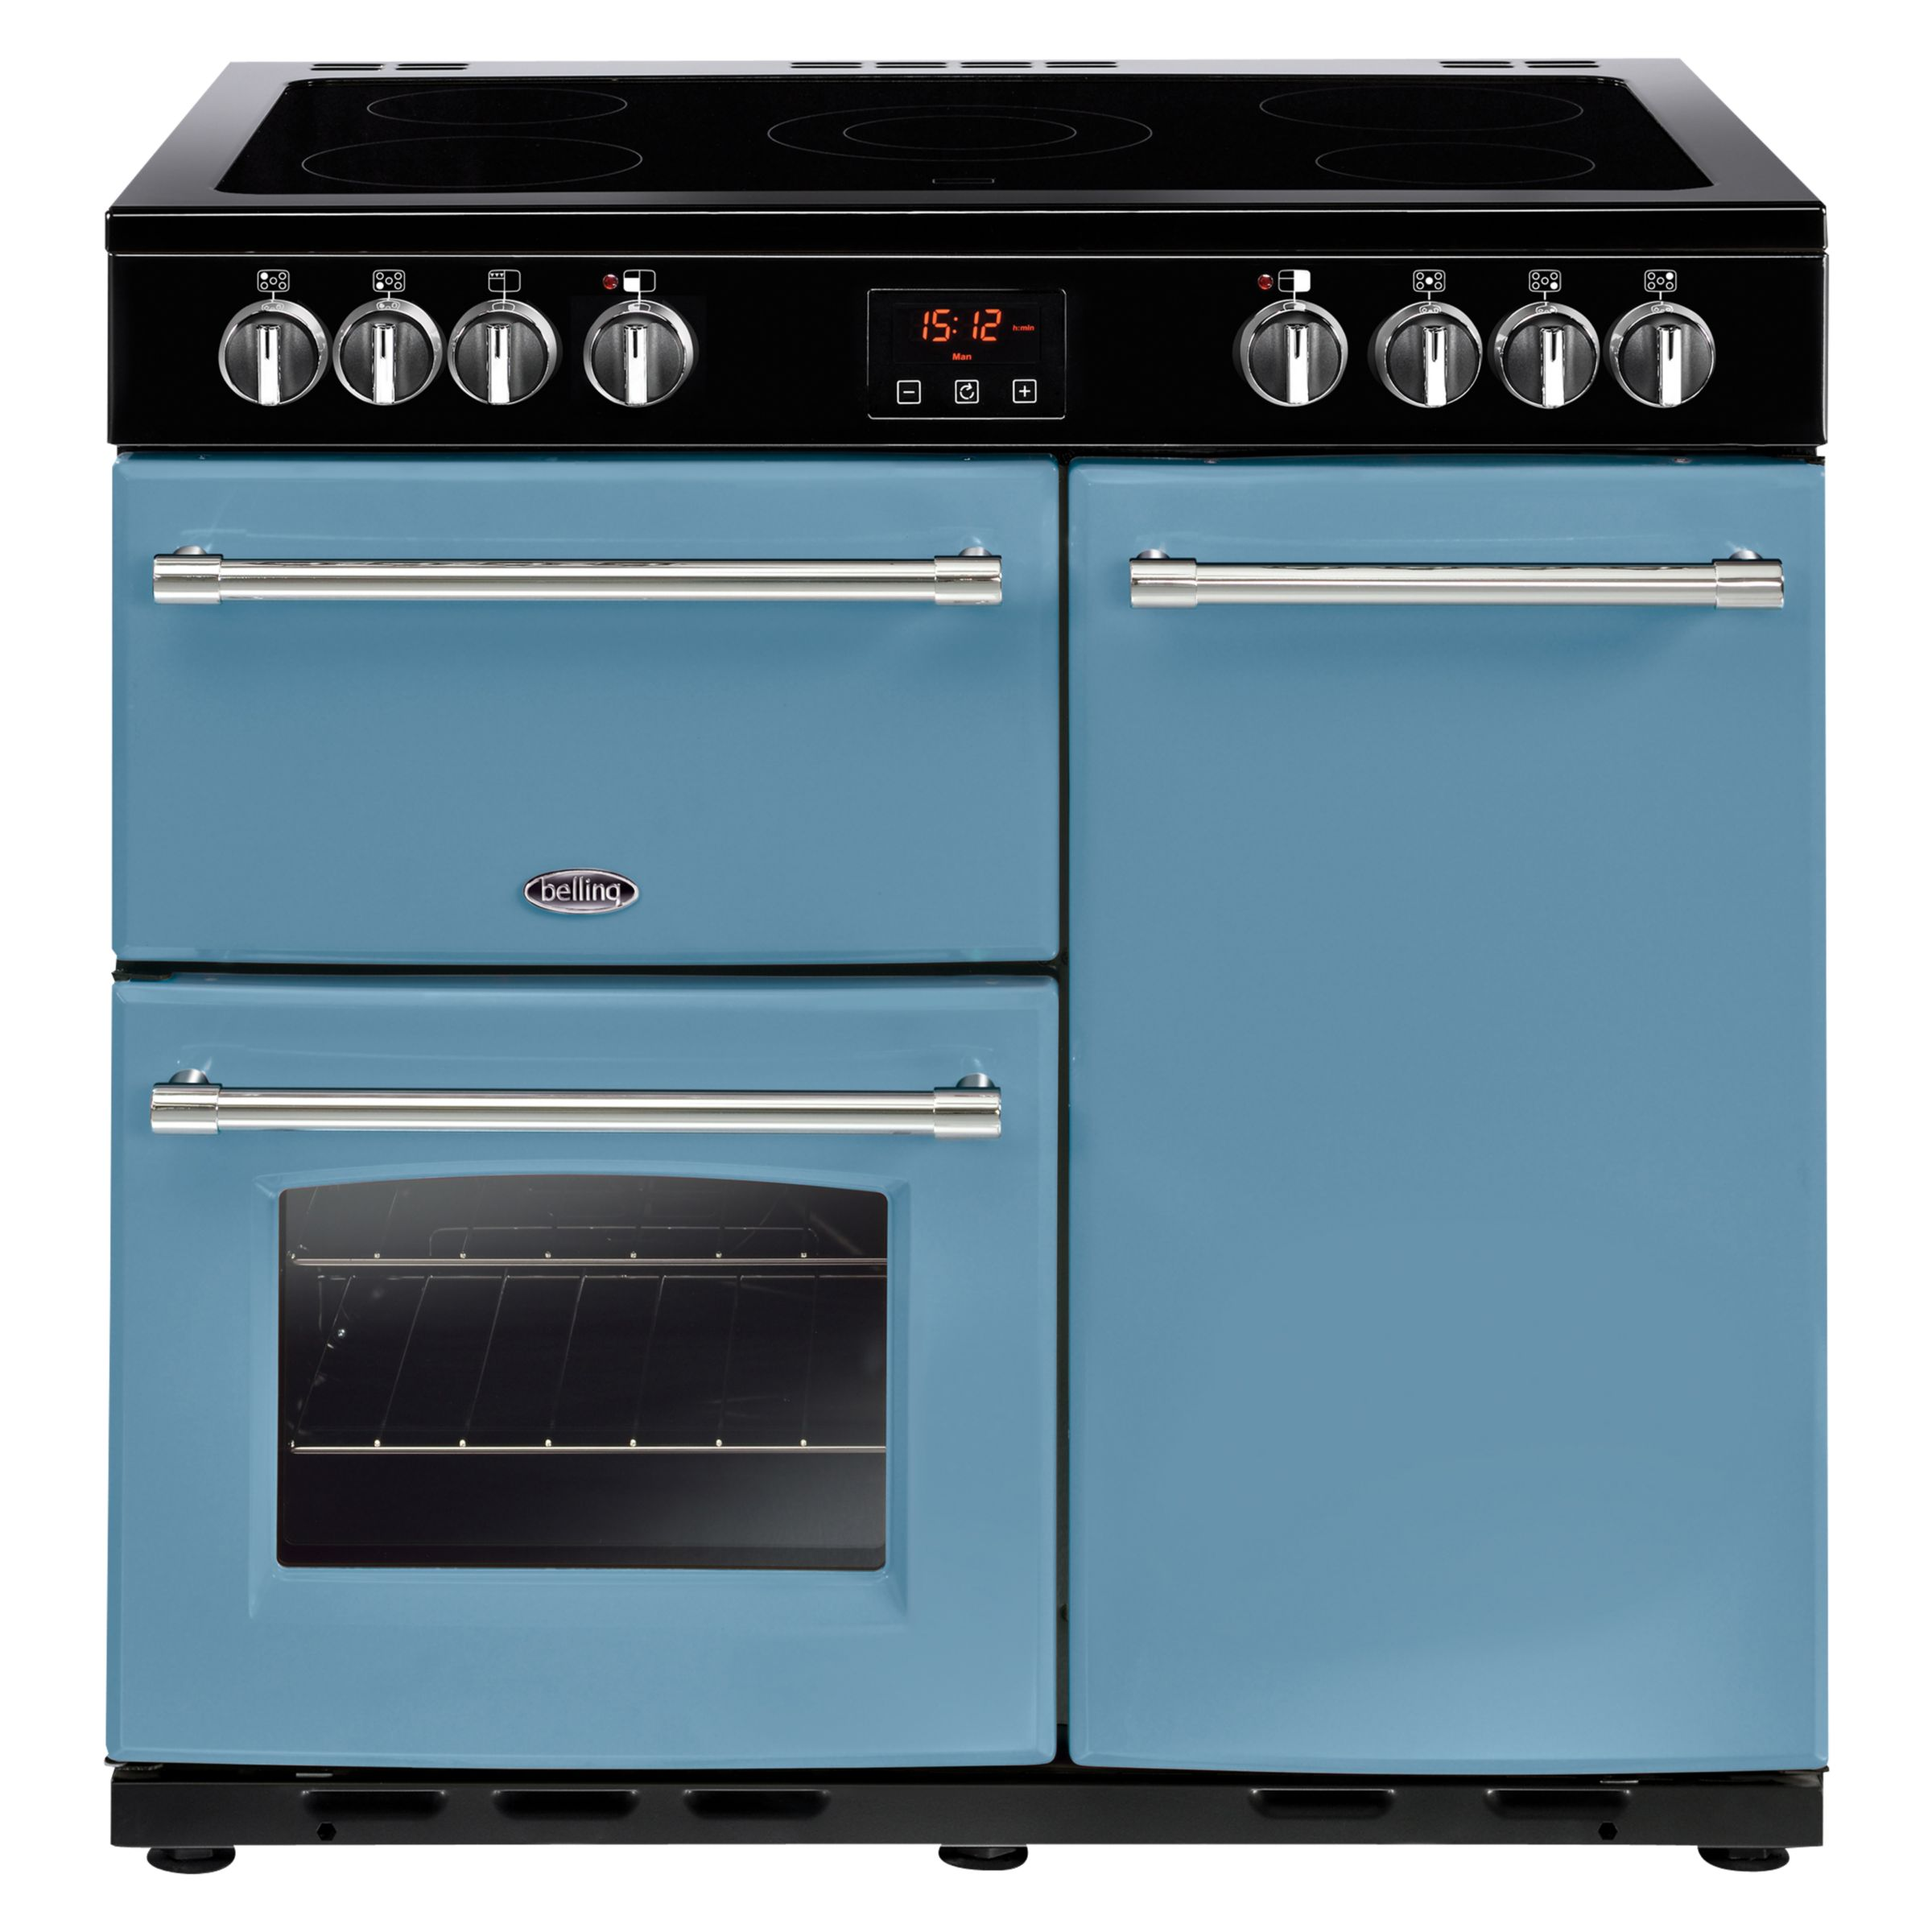 Belling Belling Farmhouse 90E Electric Range Cooker with Ceramic Hob